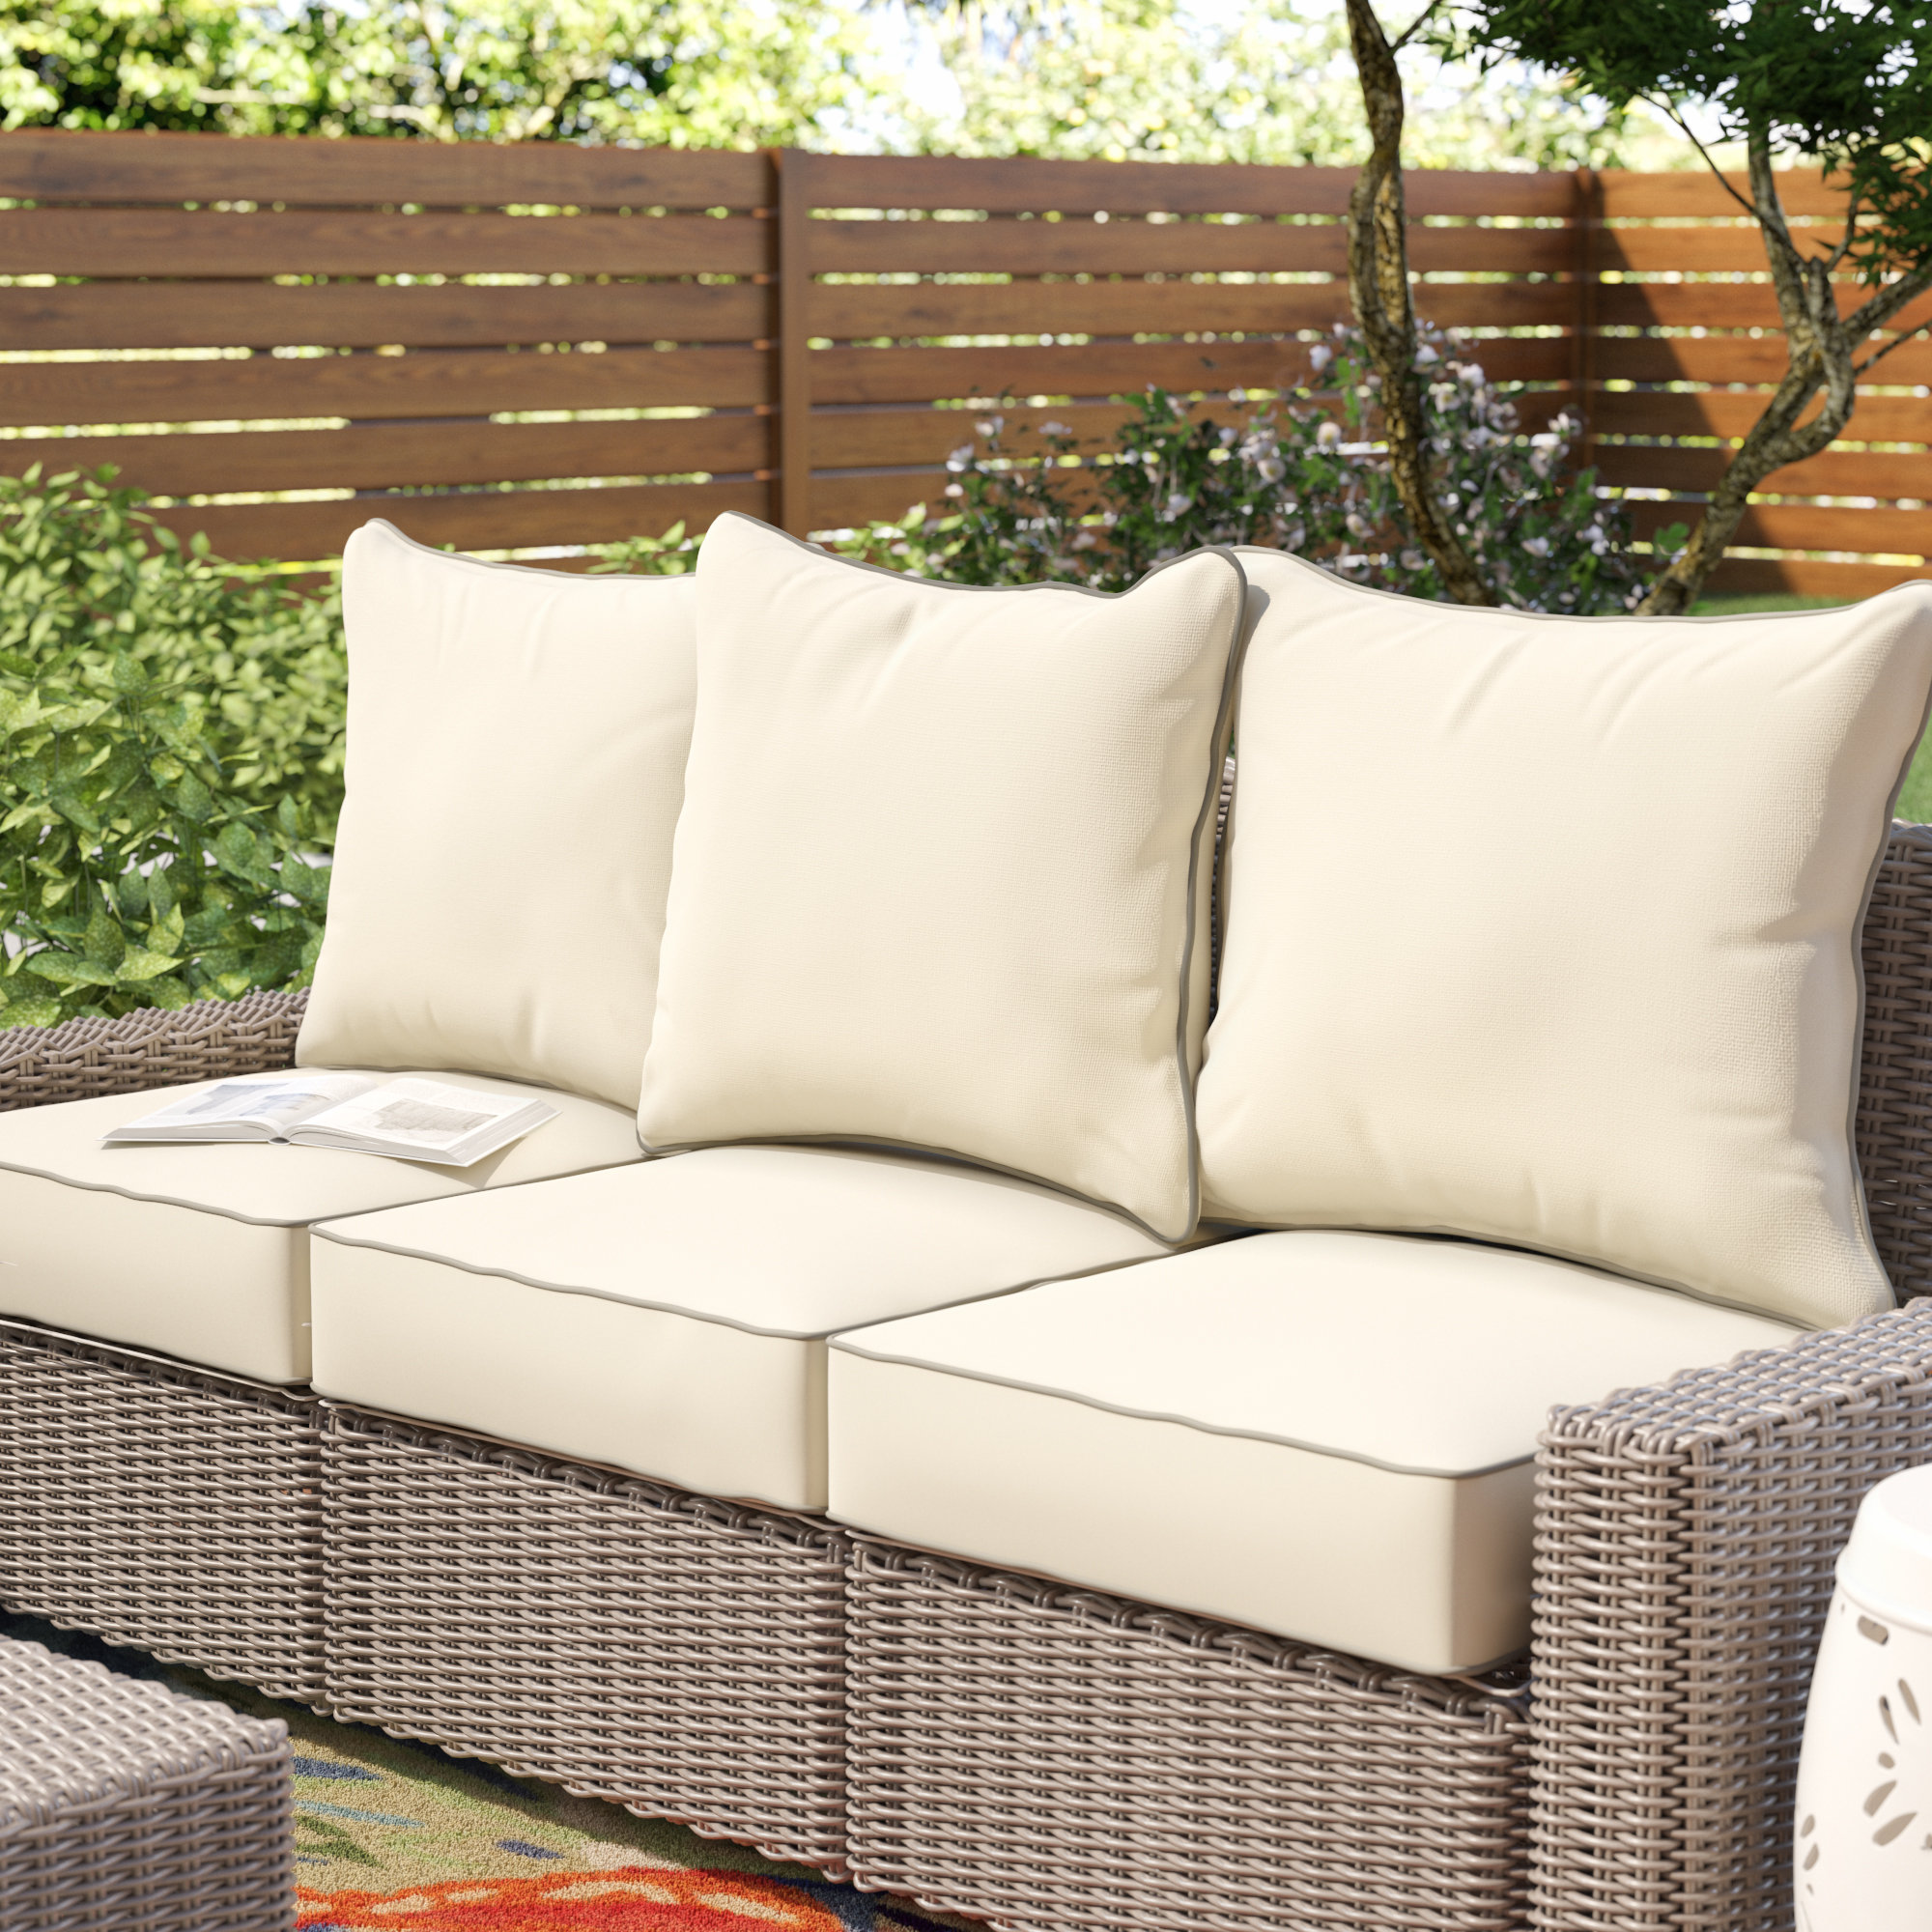 Beachcrest Home 6 Piece Piped Indoor/Outdoor Sunbrella Sofa Cushion Set &  Reviews | Wayfair